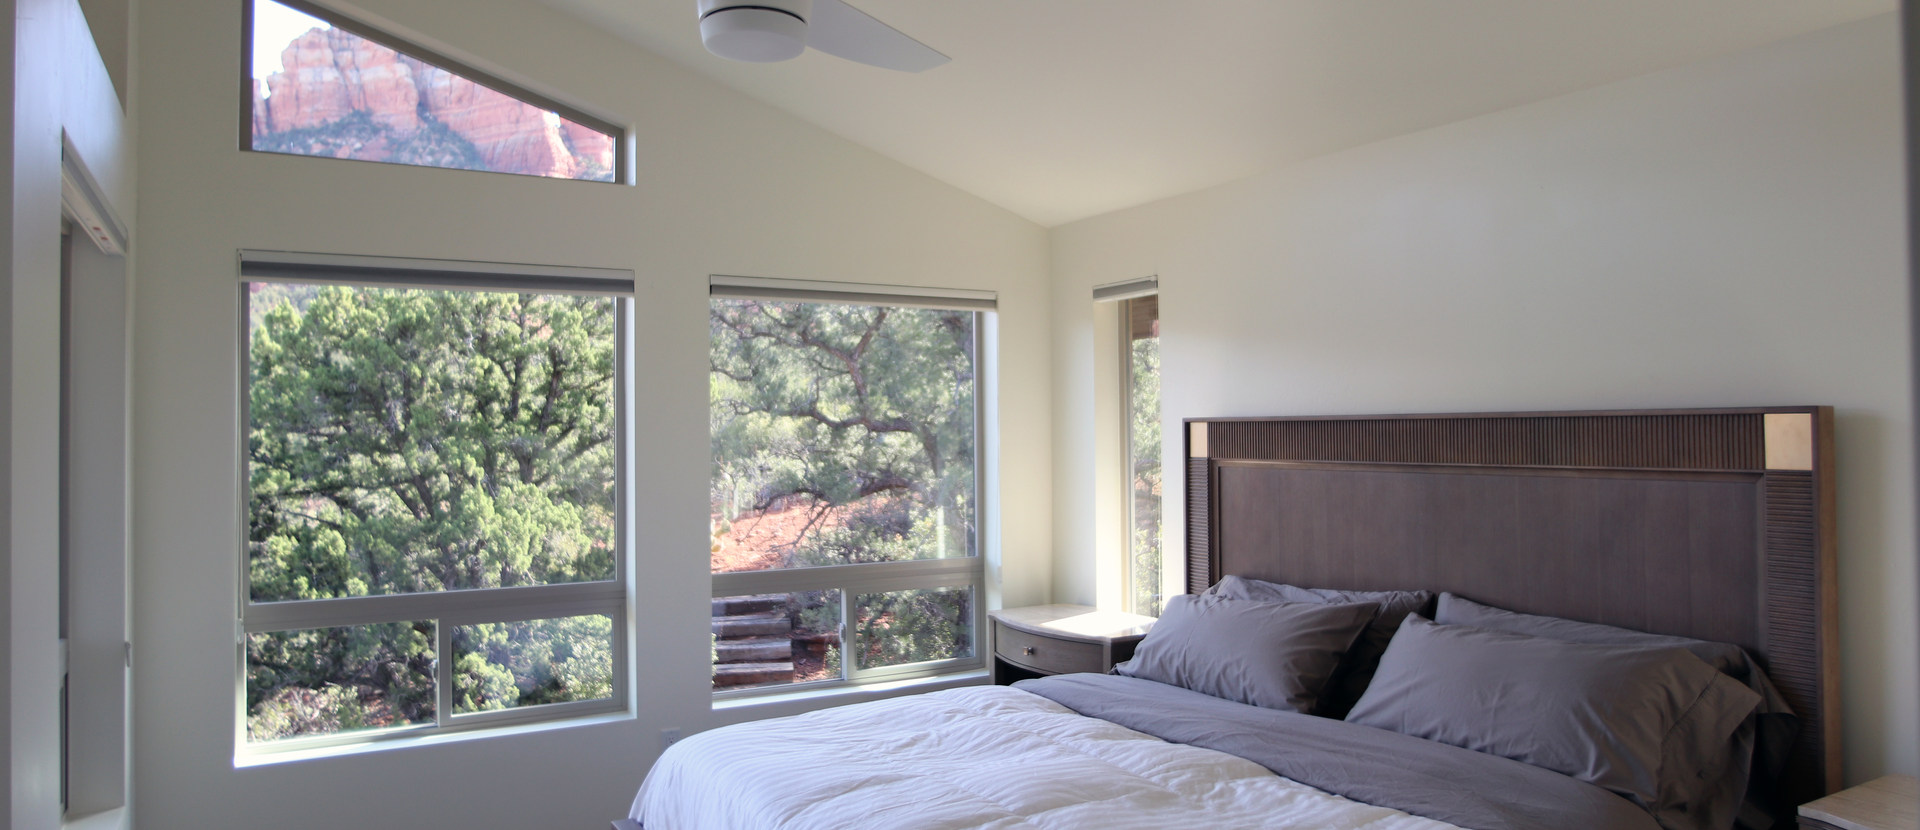 GUEST SUITE ADDITION IN SEDONA